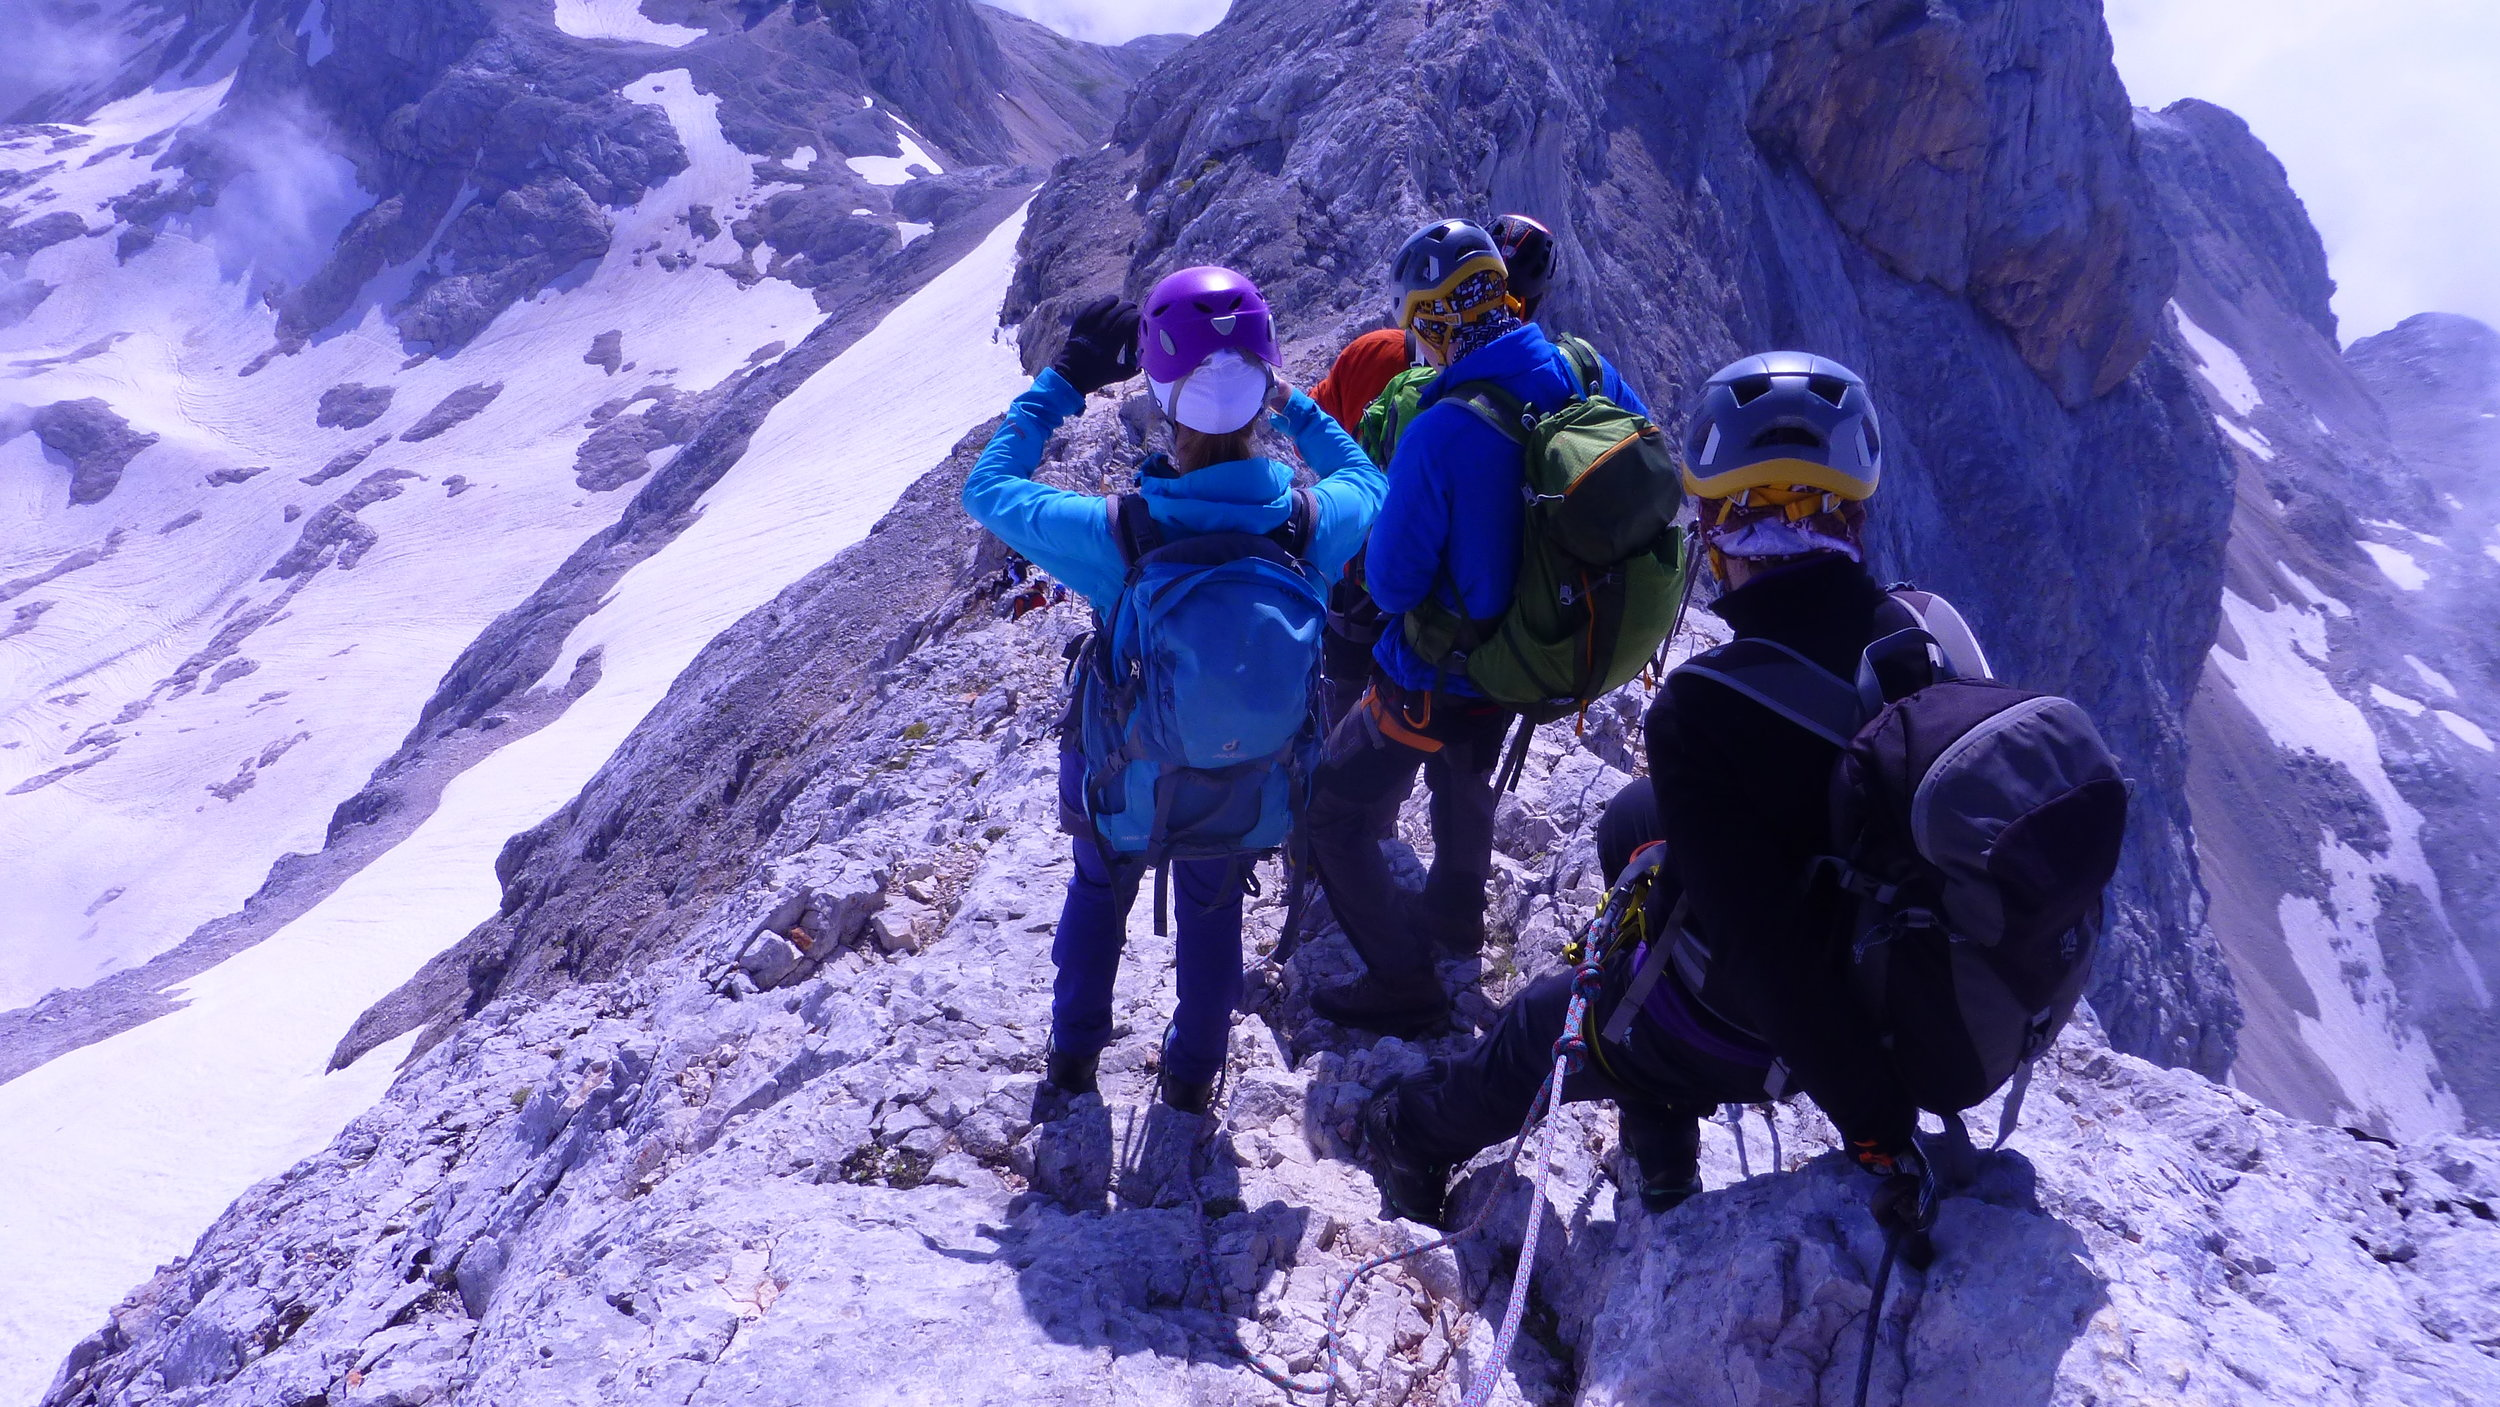 Descent from the Triglav